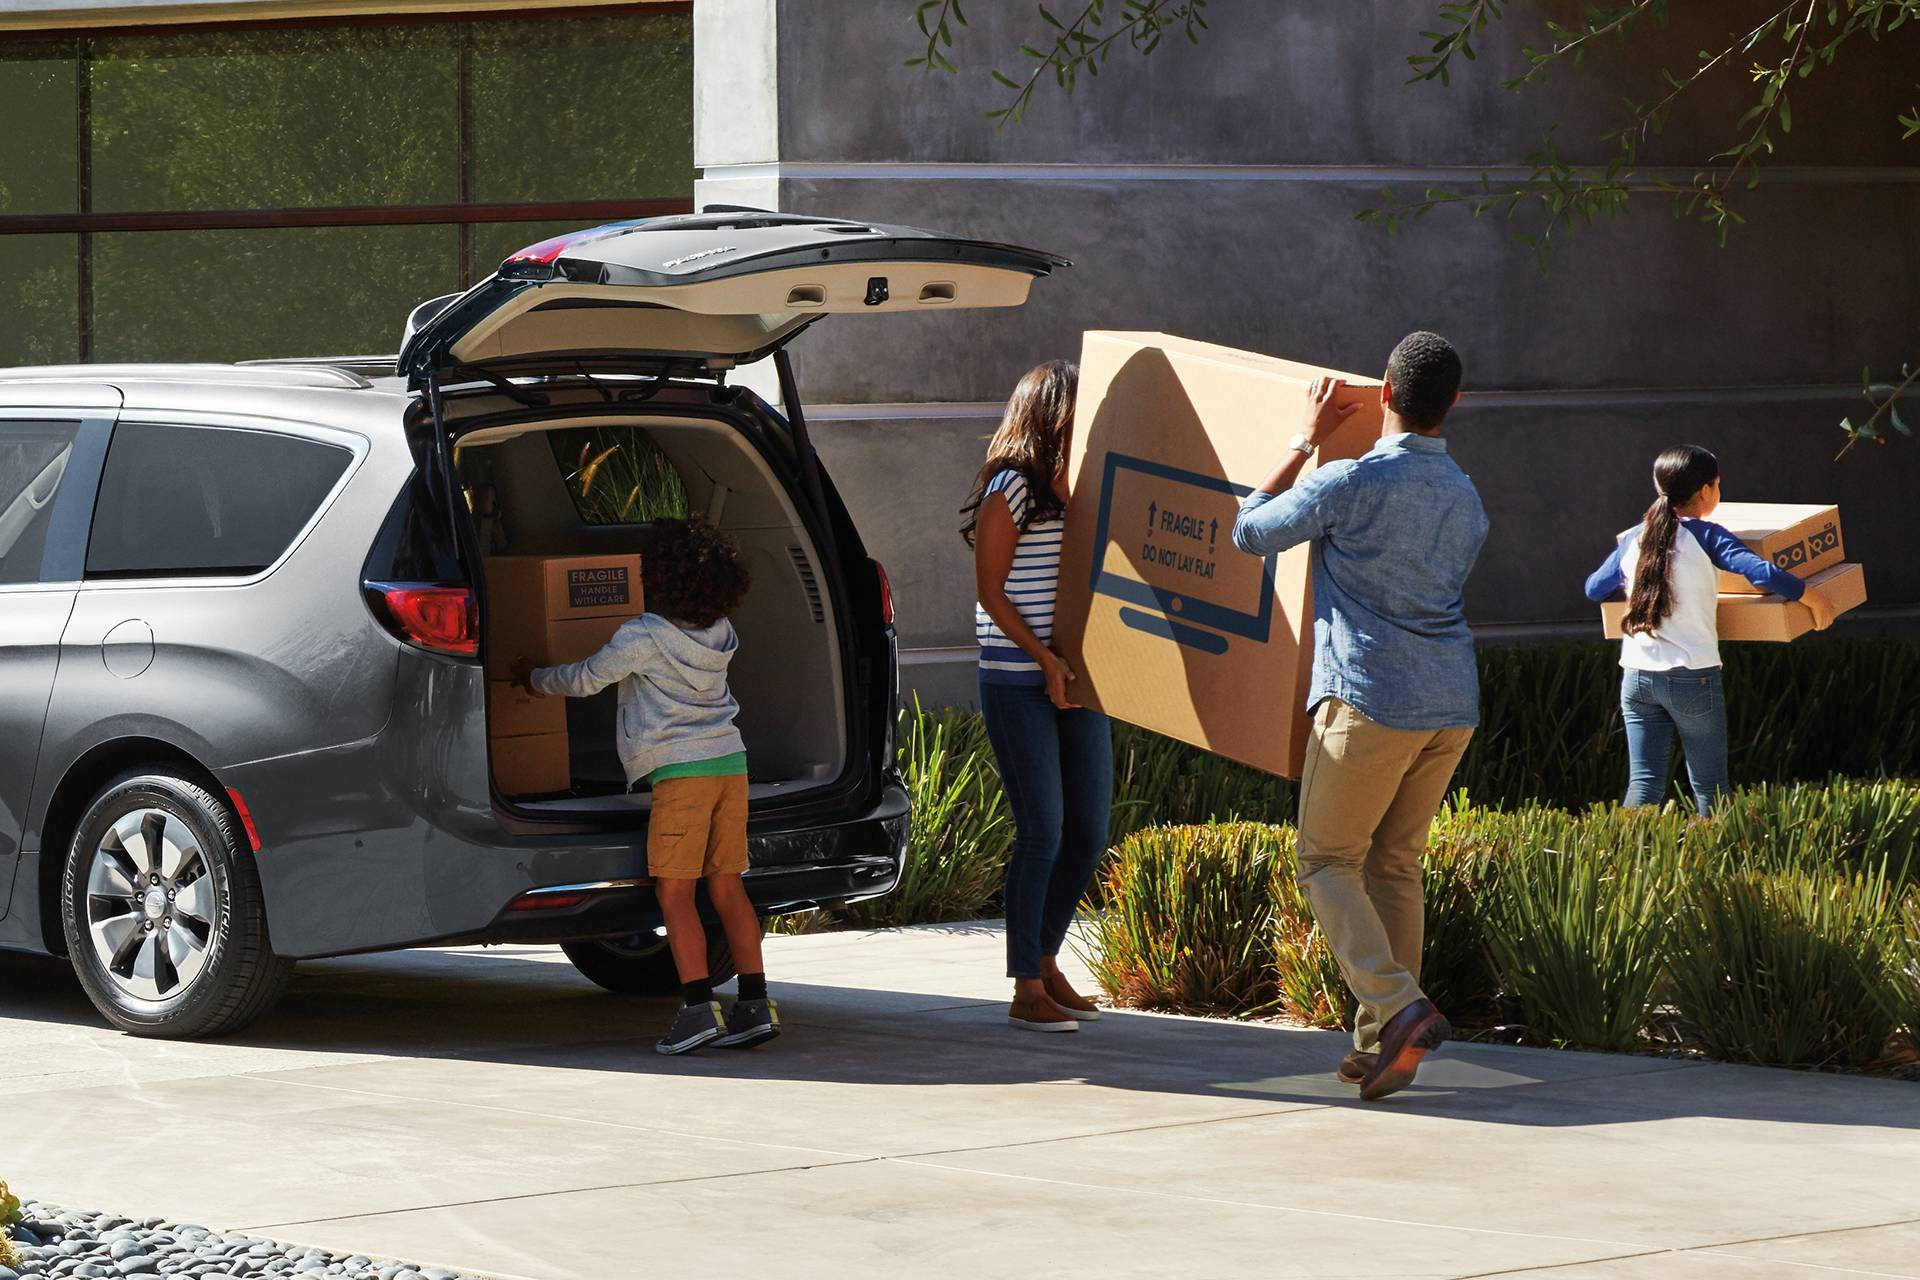 2019 Chrysler Pacifica Hybrid exterior shot of family unloading goods from trunk